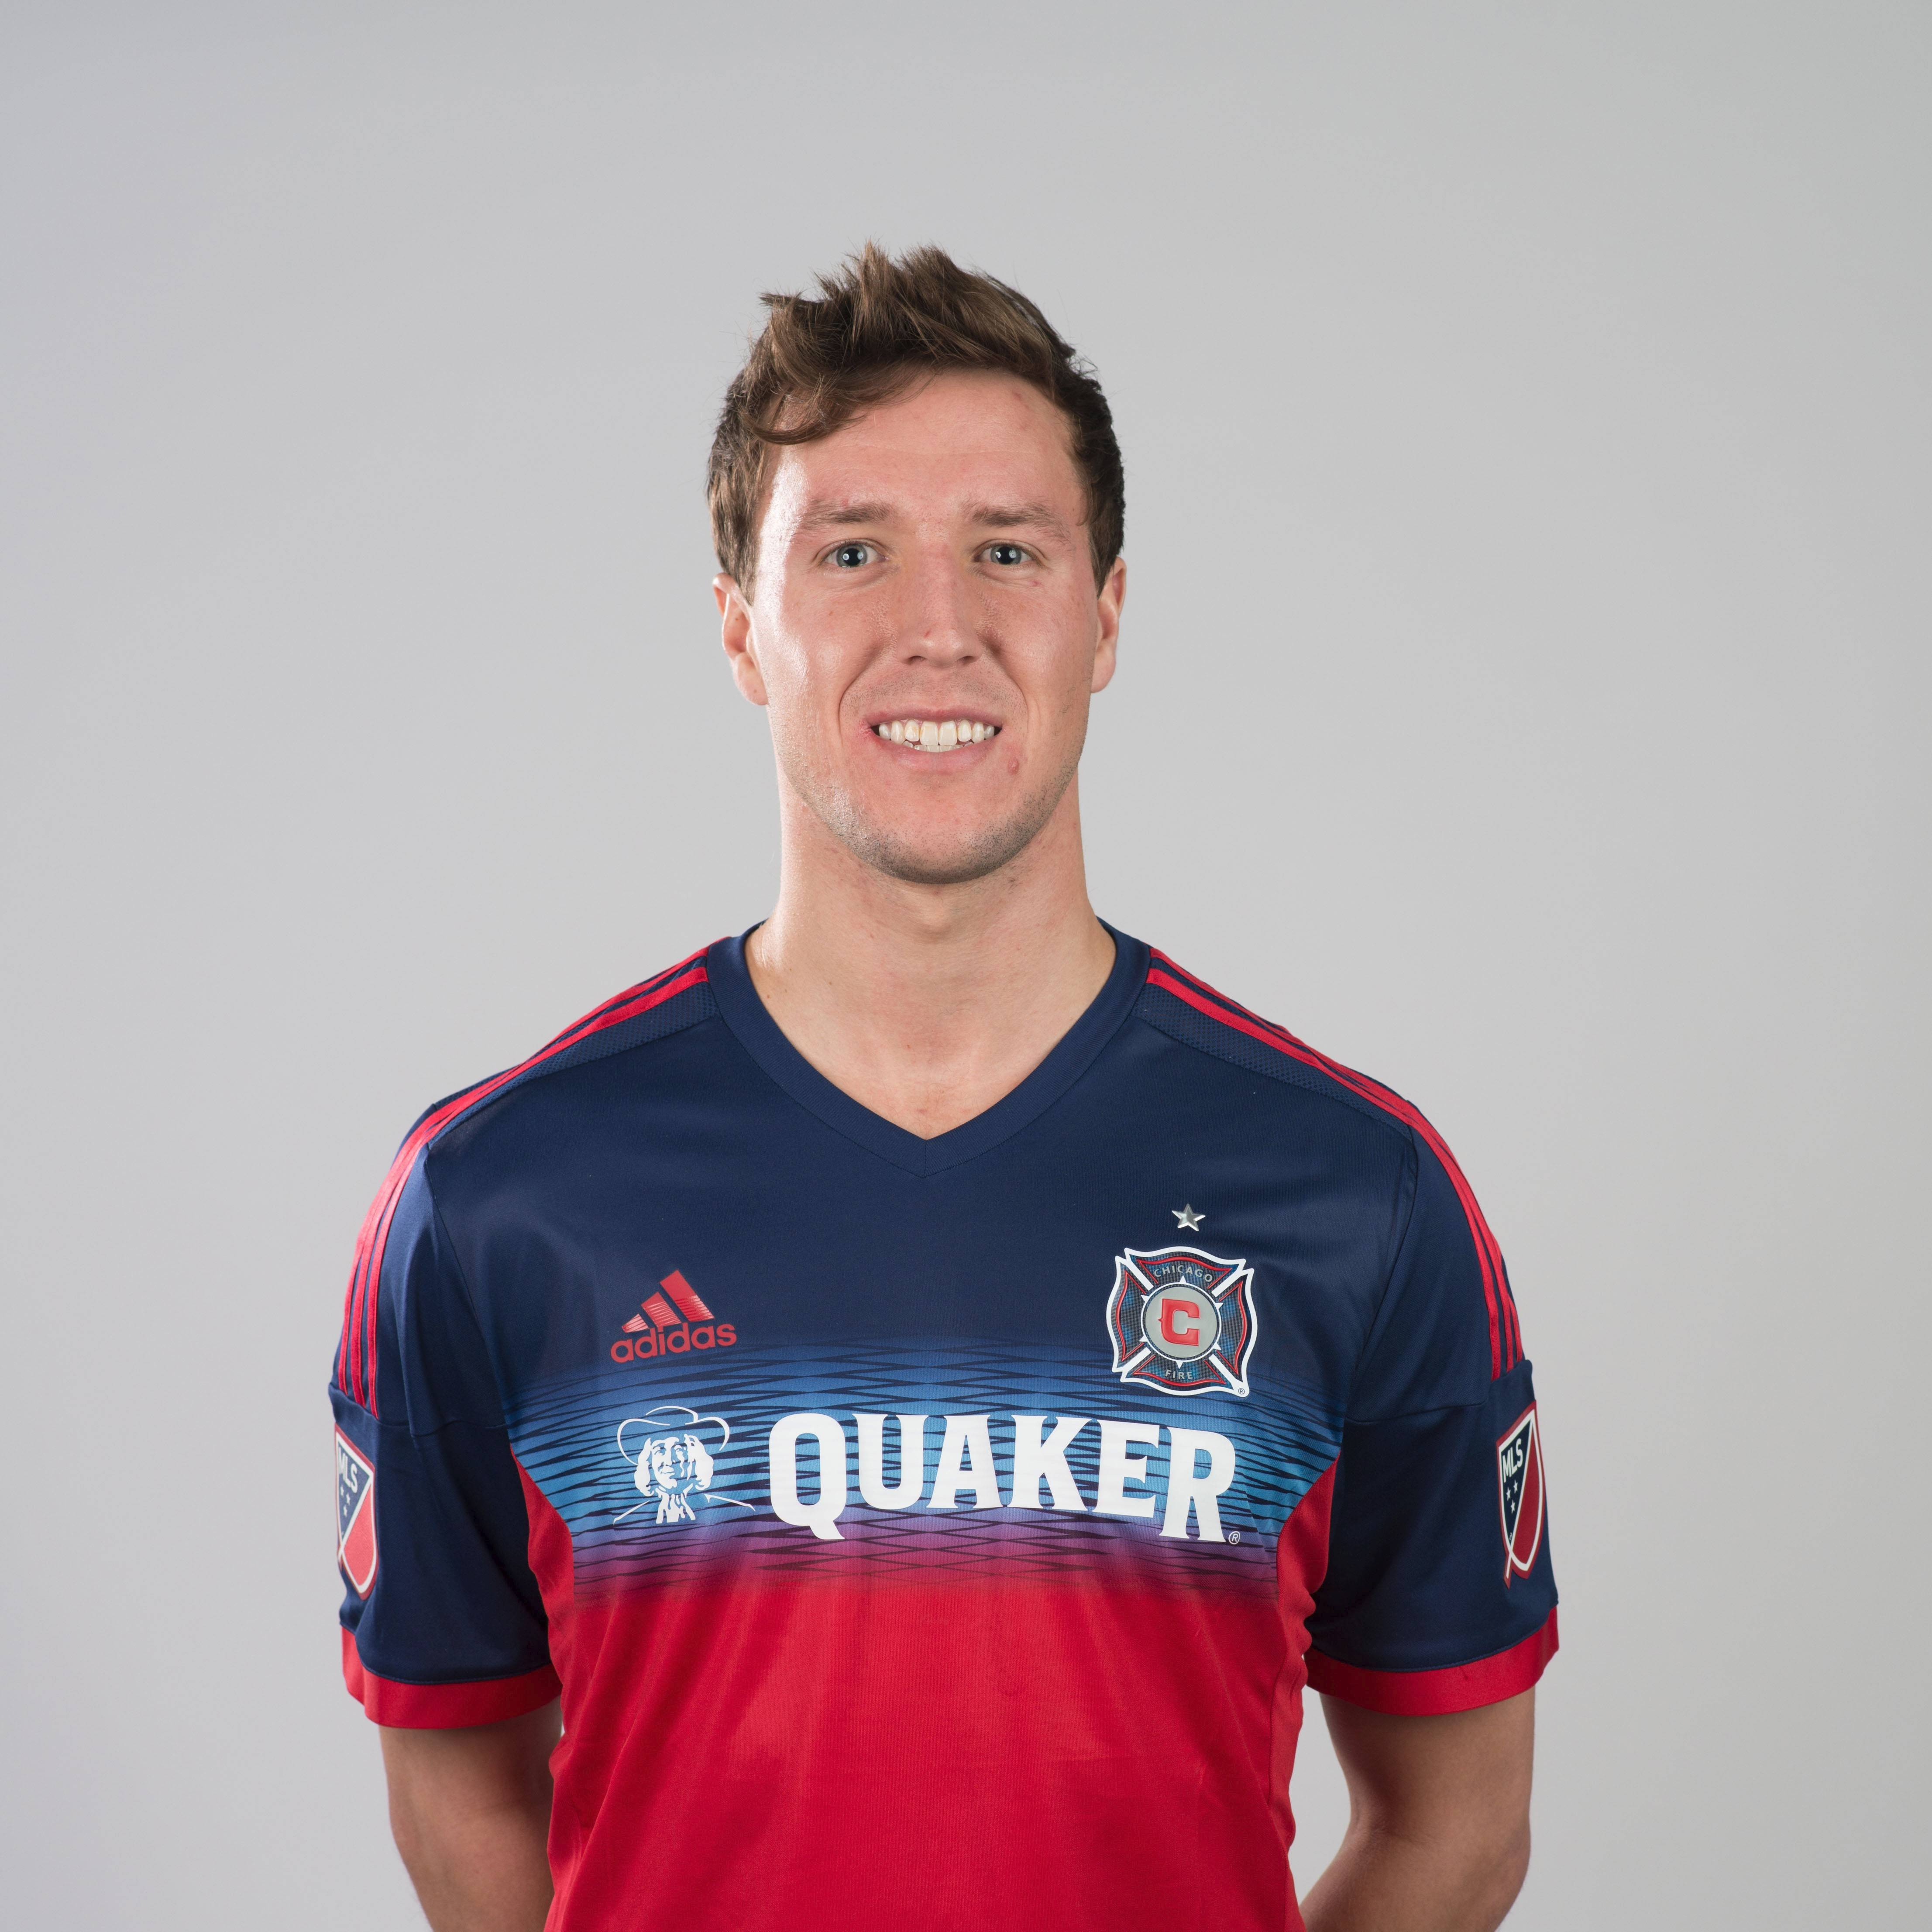 Patrick Doody, Chicago Fire defender from Naperville